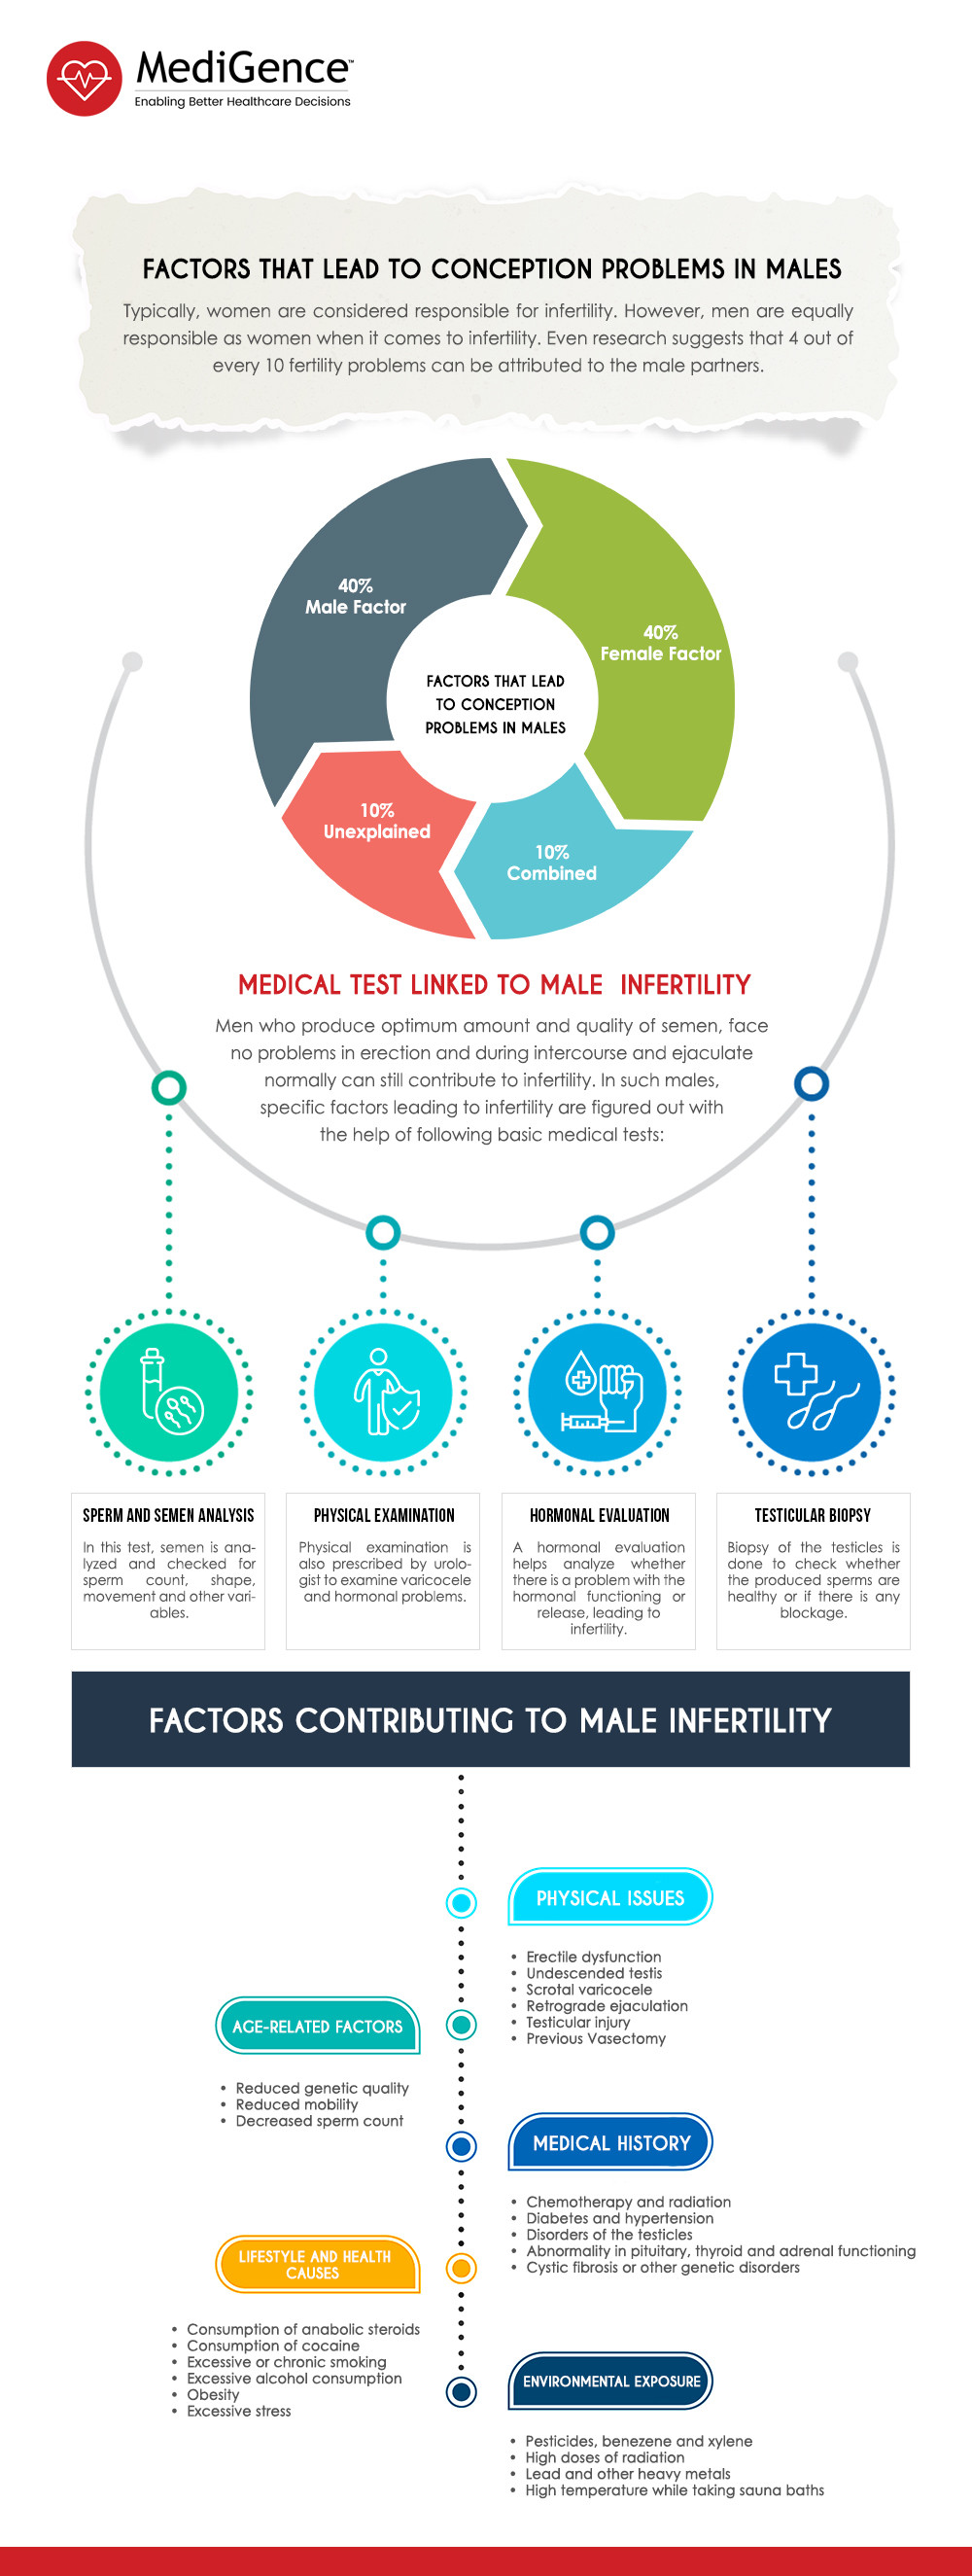 Infertility in Males